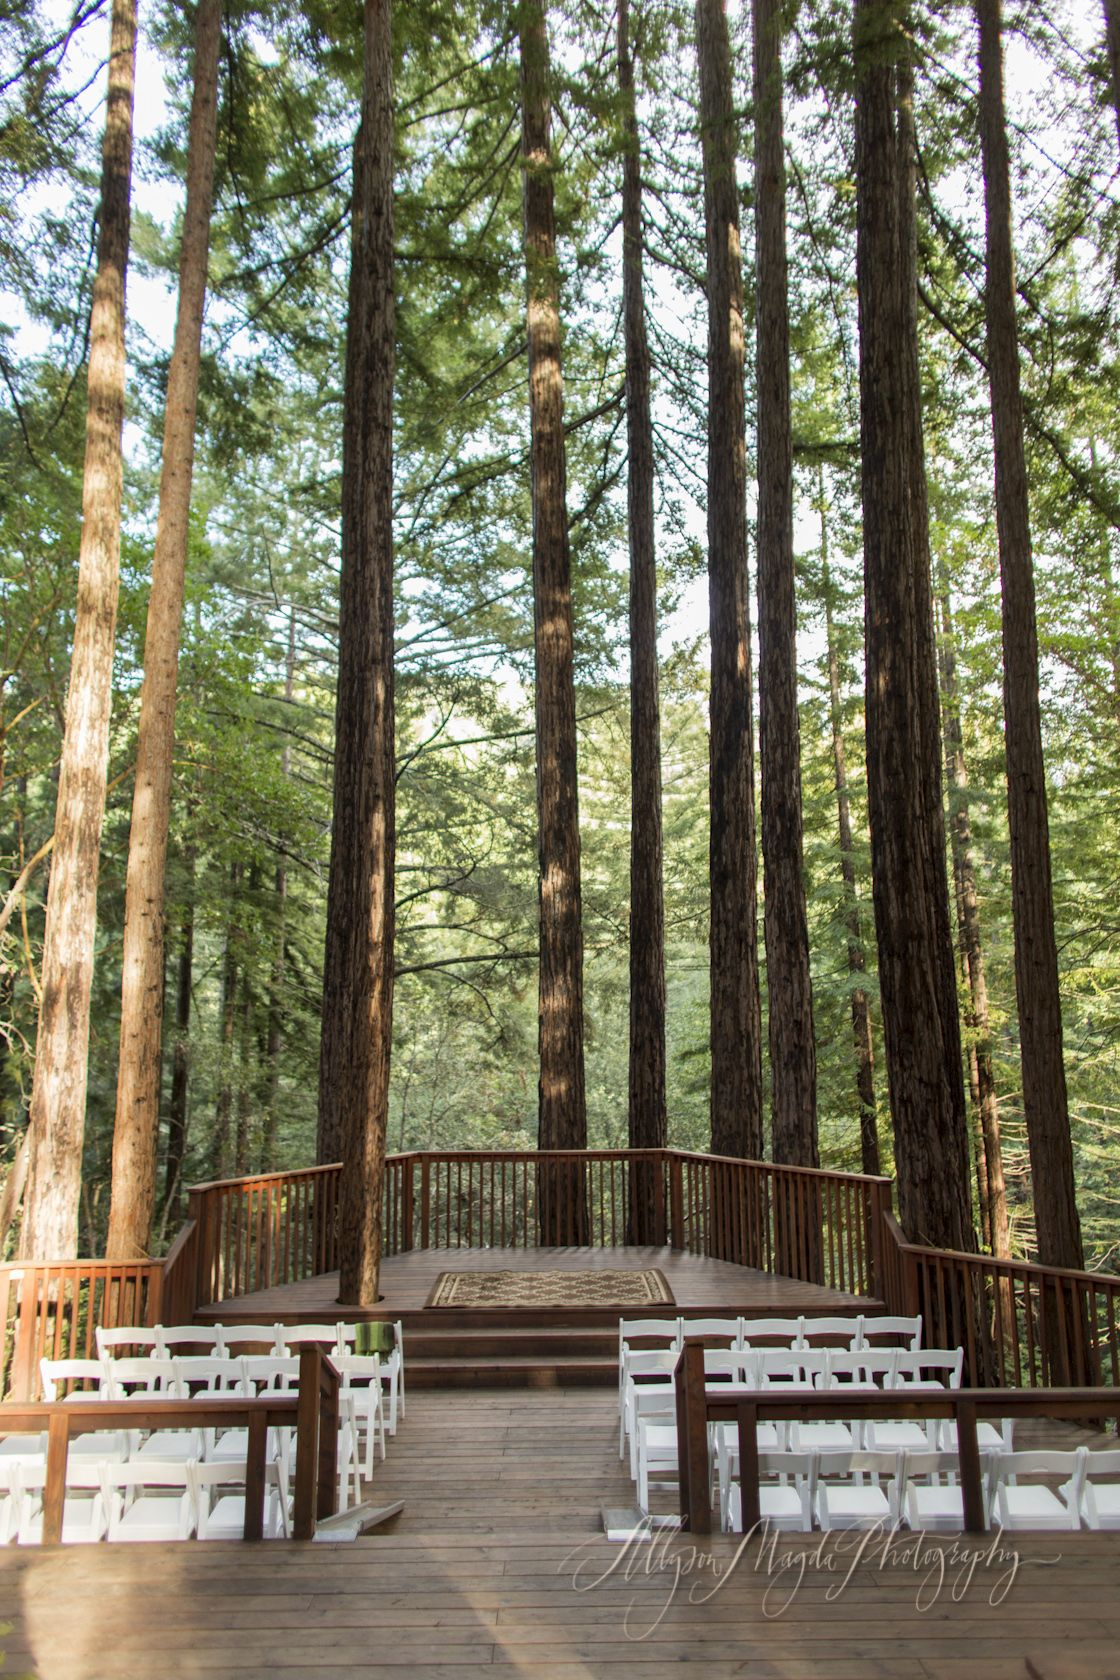 amphitheatre of the redwoods at pema osel ling wedding and events venue santa cruz